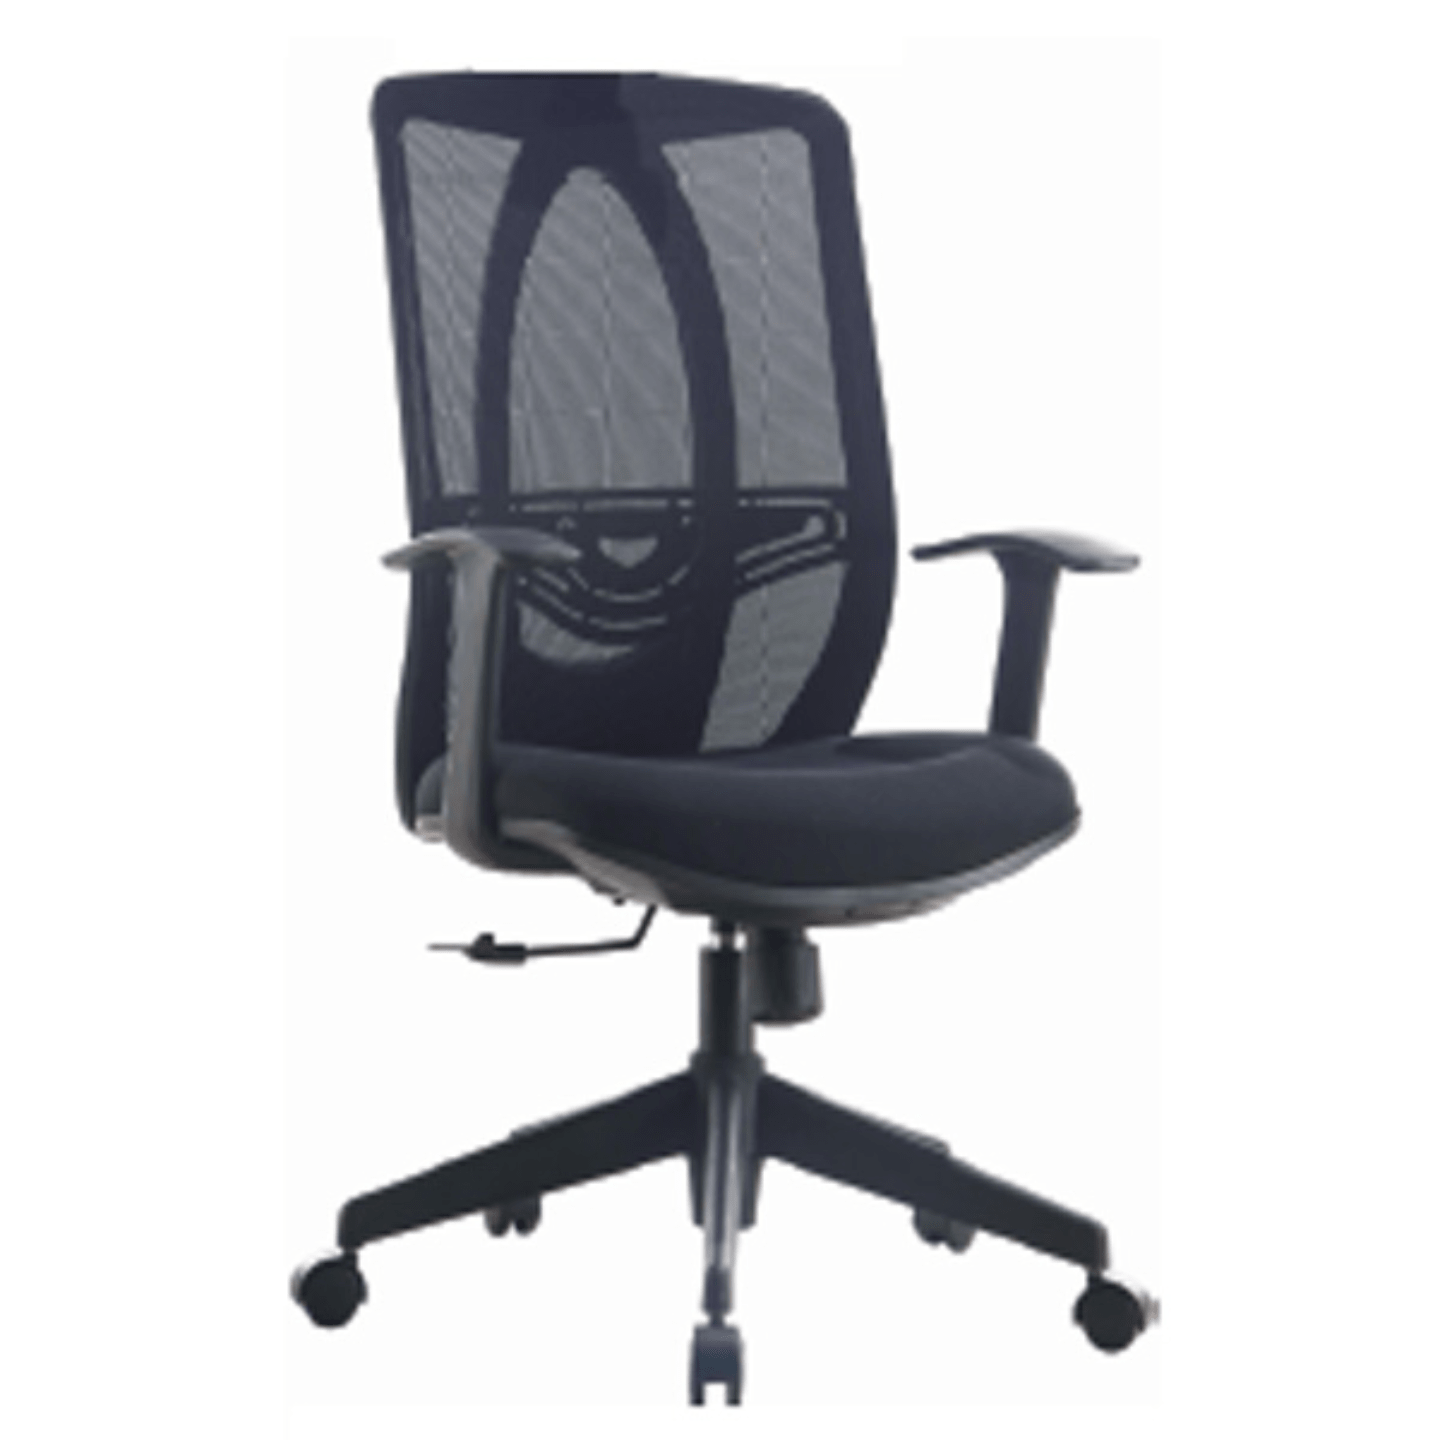 Home Office Chair (Model - Nitto) | Ergonomic Office Chair